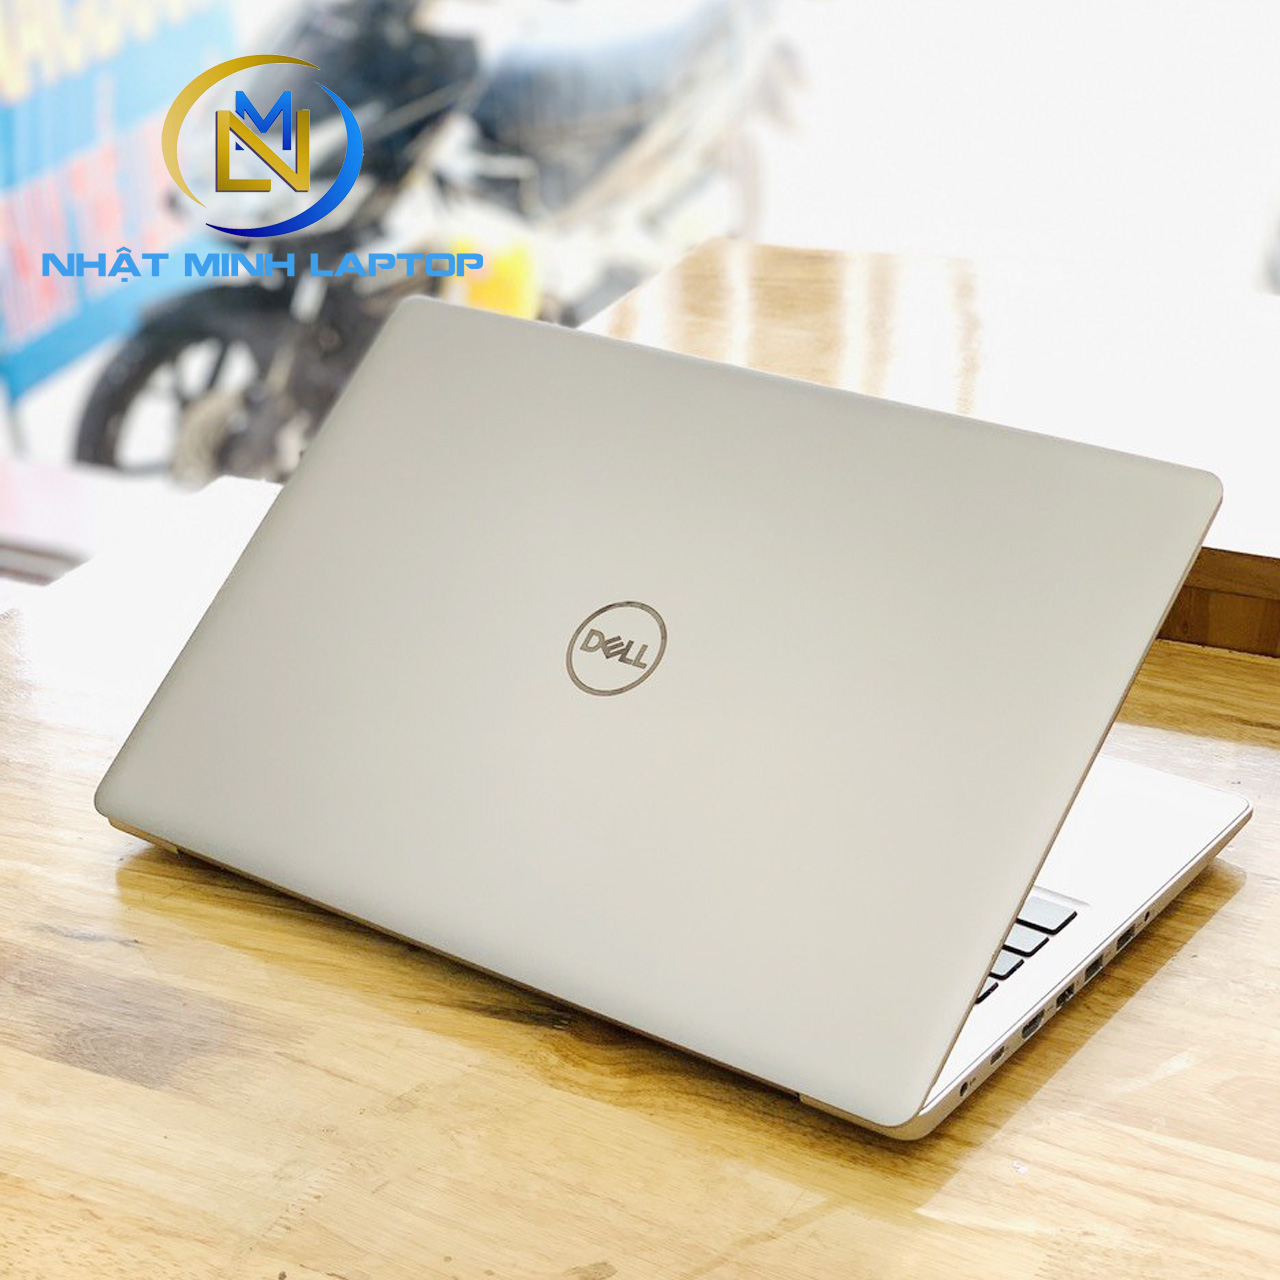 Laptop Dell inspiron 5570 i7-8550U Ram 8G SSD 256G Vga Rời 4G 15.6 inch Full HD Like New